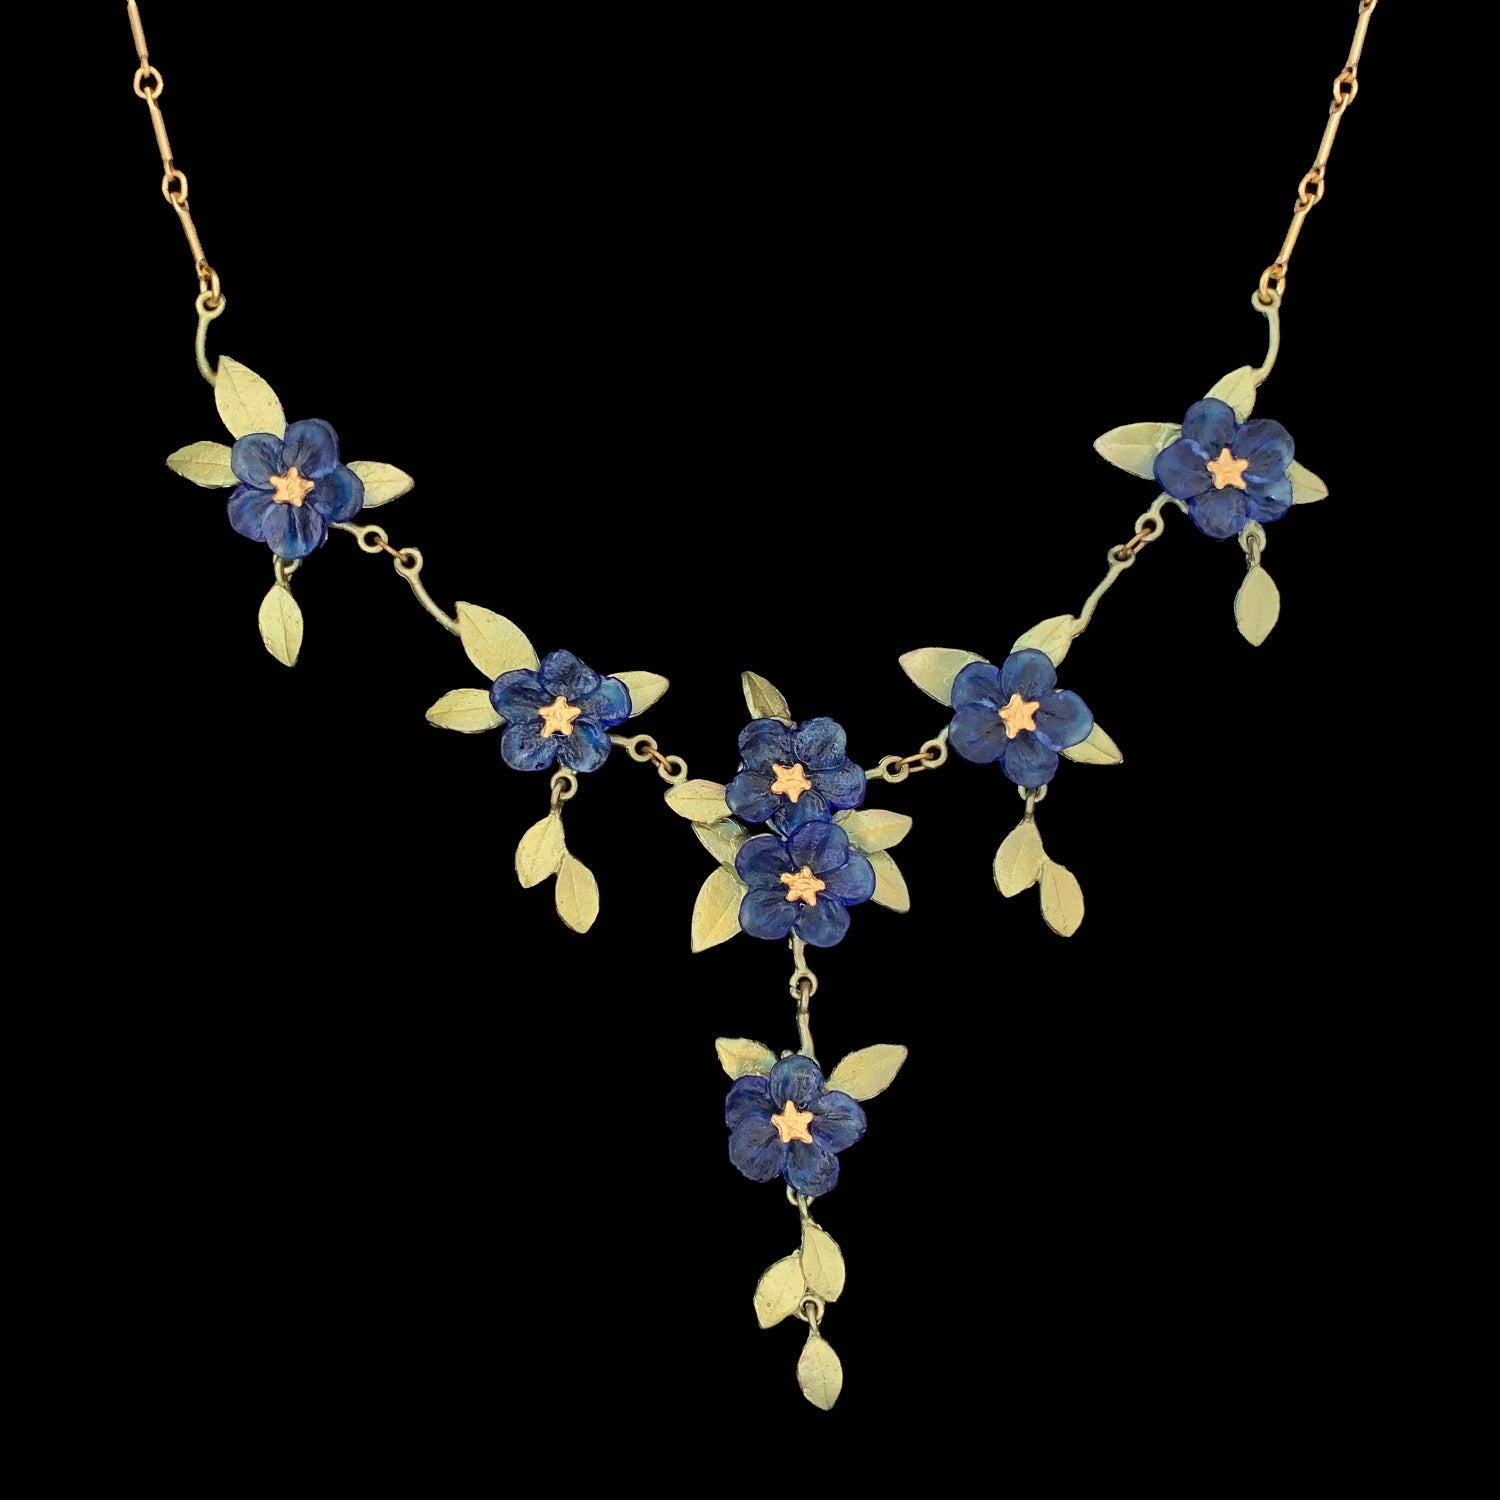 Blue-Eyed Mary Necklace